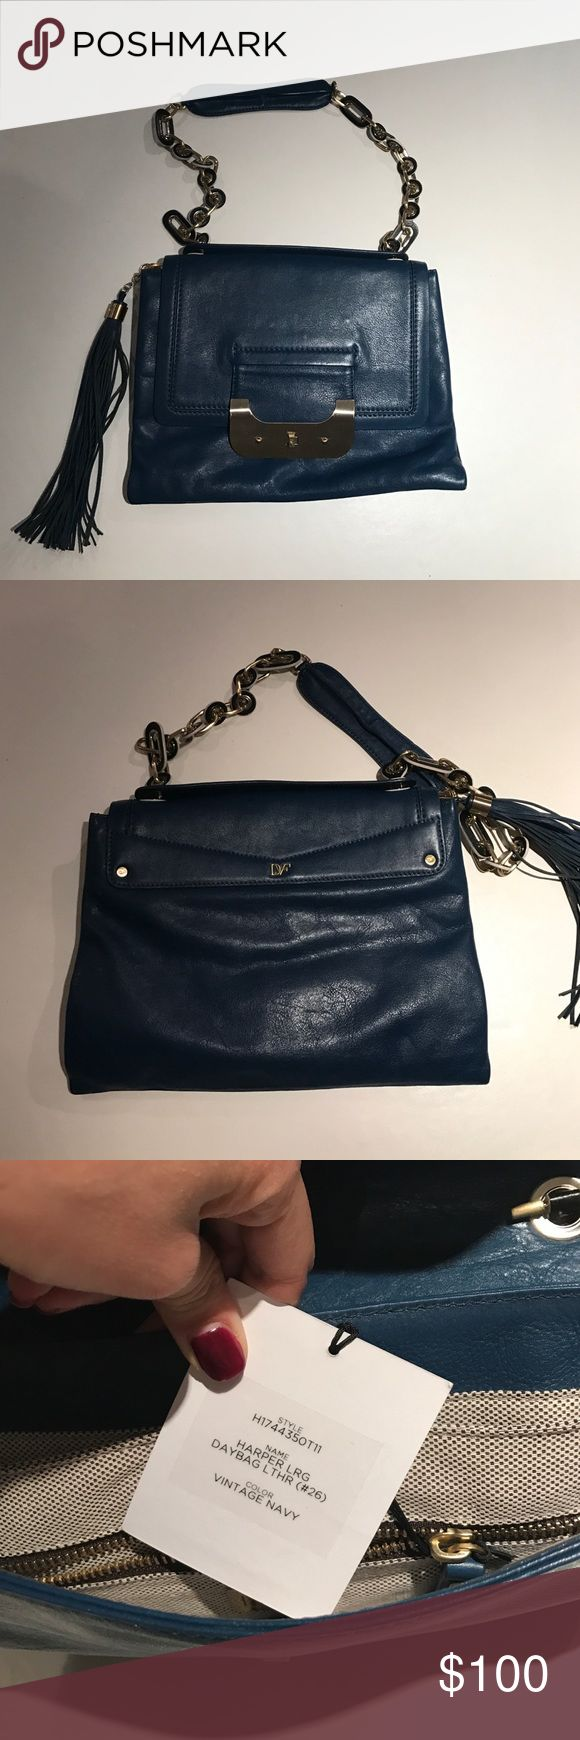 Diane Von Furstenberg Harper Bag Soft Leather Large Envelope Bag/Clutch. Can Also Be Used As A Shoulder Bag Or Cross Body Bag. Gently Used, But In Great Condition. Diane von Furstenberg Bags Shoulder Bags